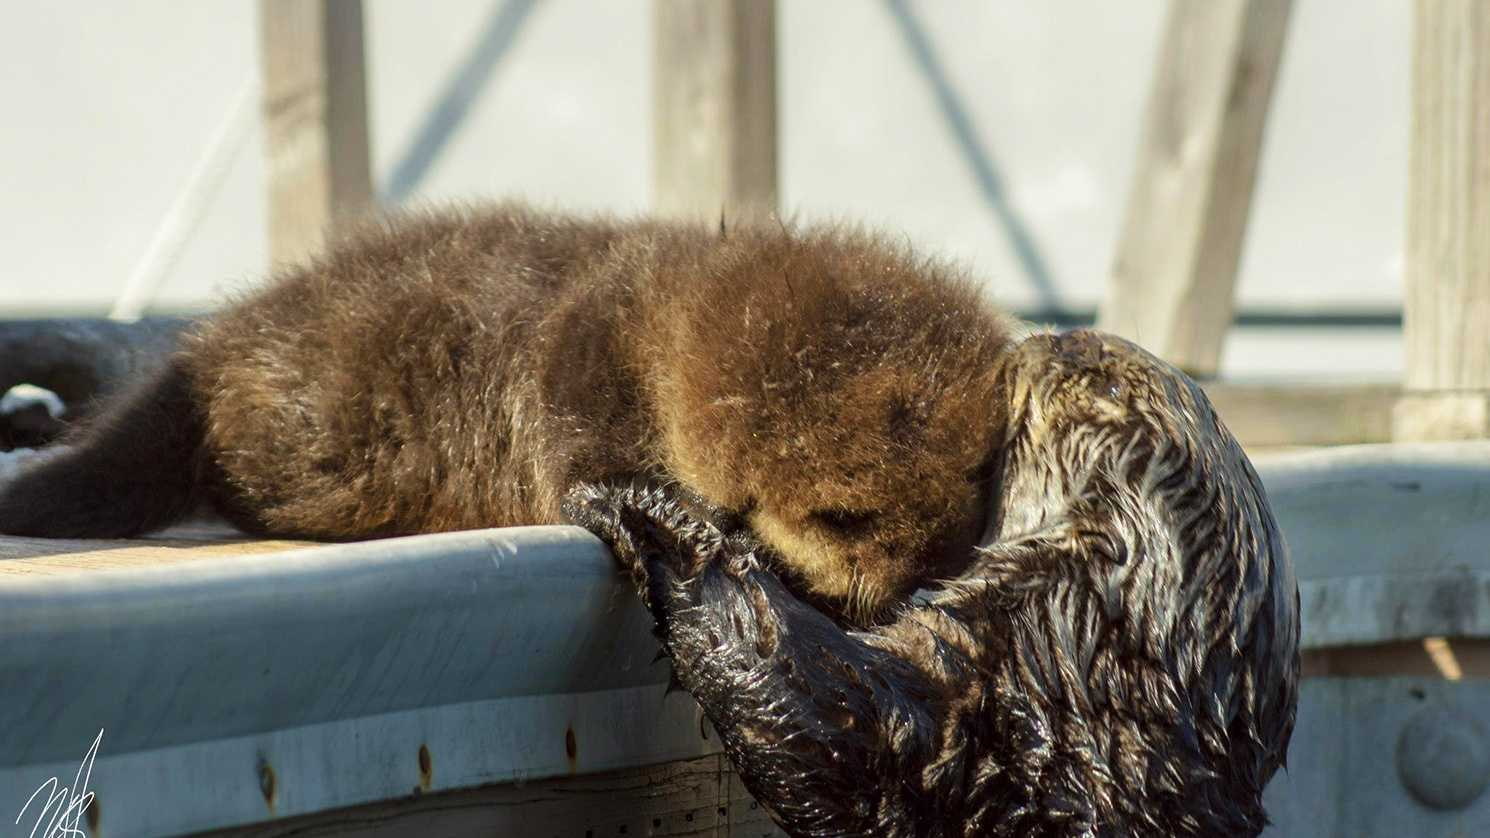 A sea otter takes care of her 3-week-old pup in Monterey. (Photo by Sand Spit Photography / Miguel Santiago)